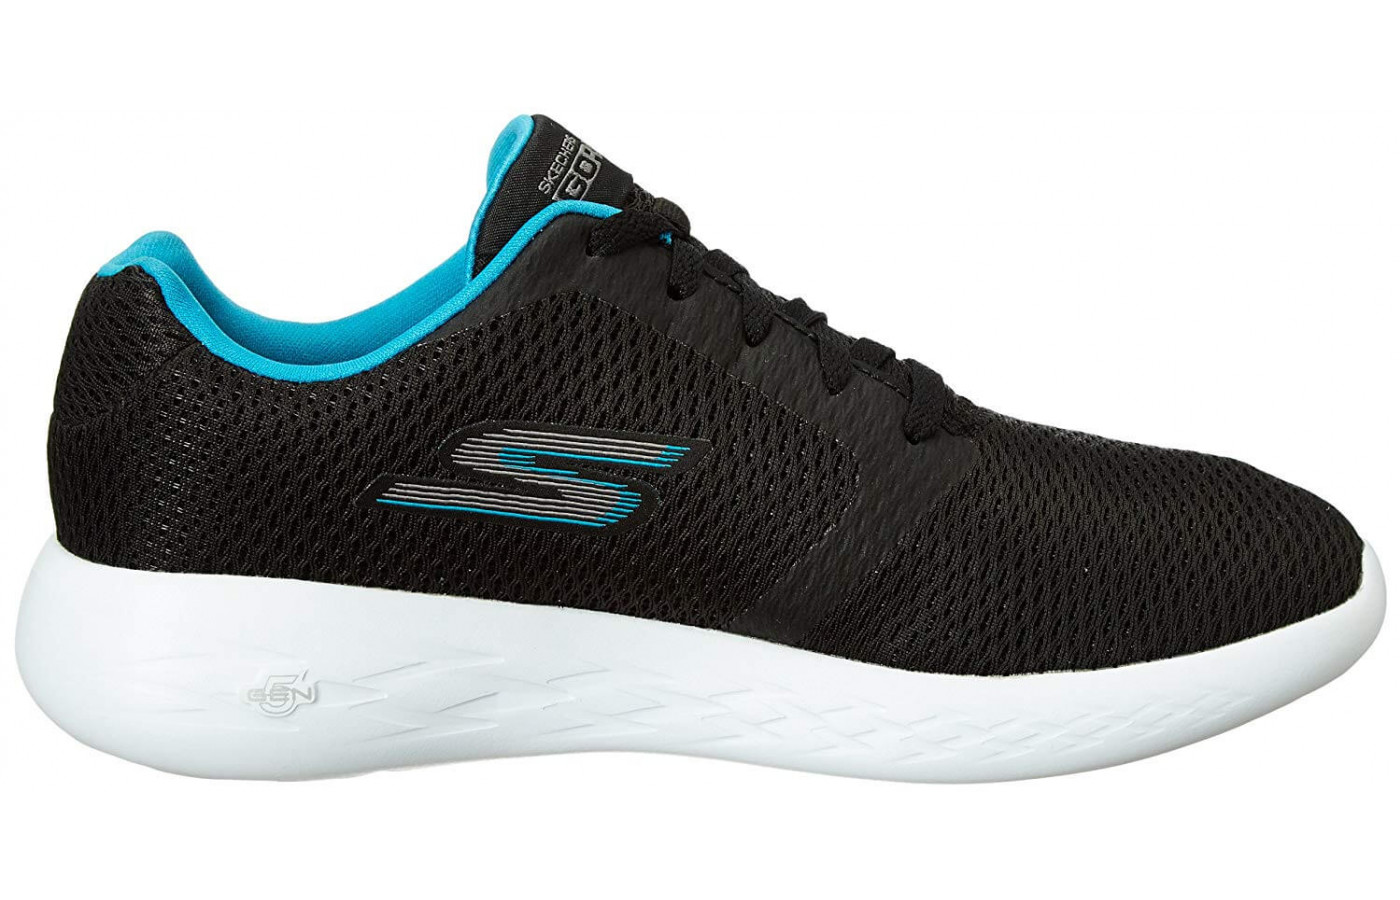 Sketchers GOrun 600 Refine side straight view